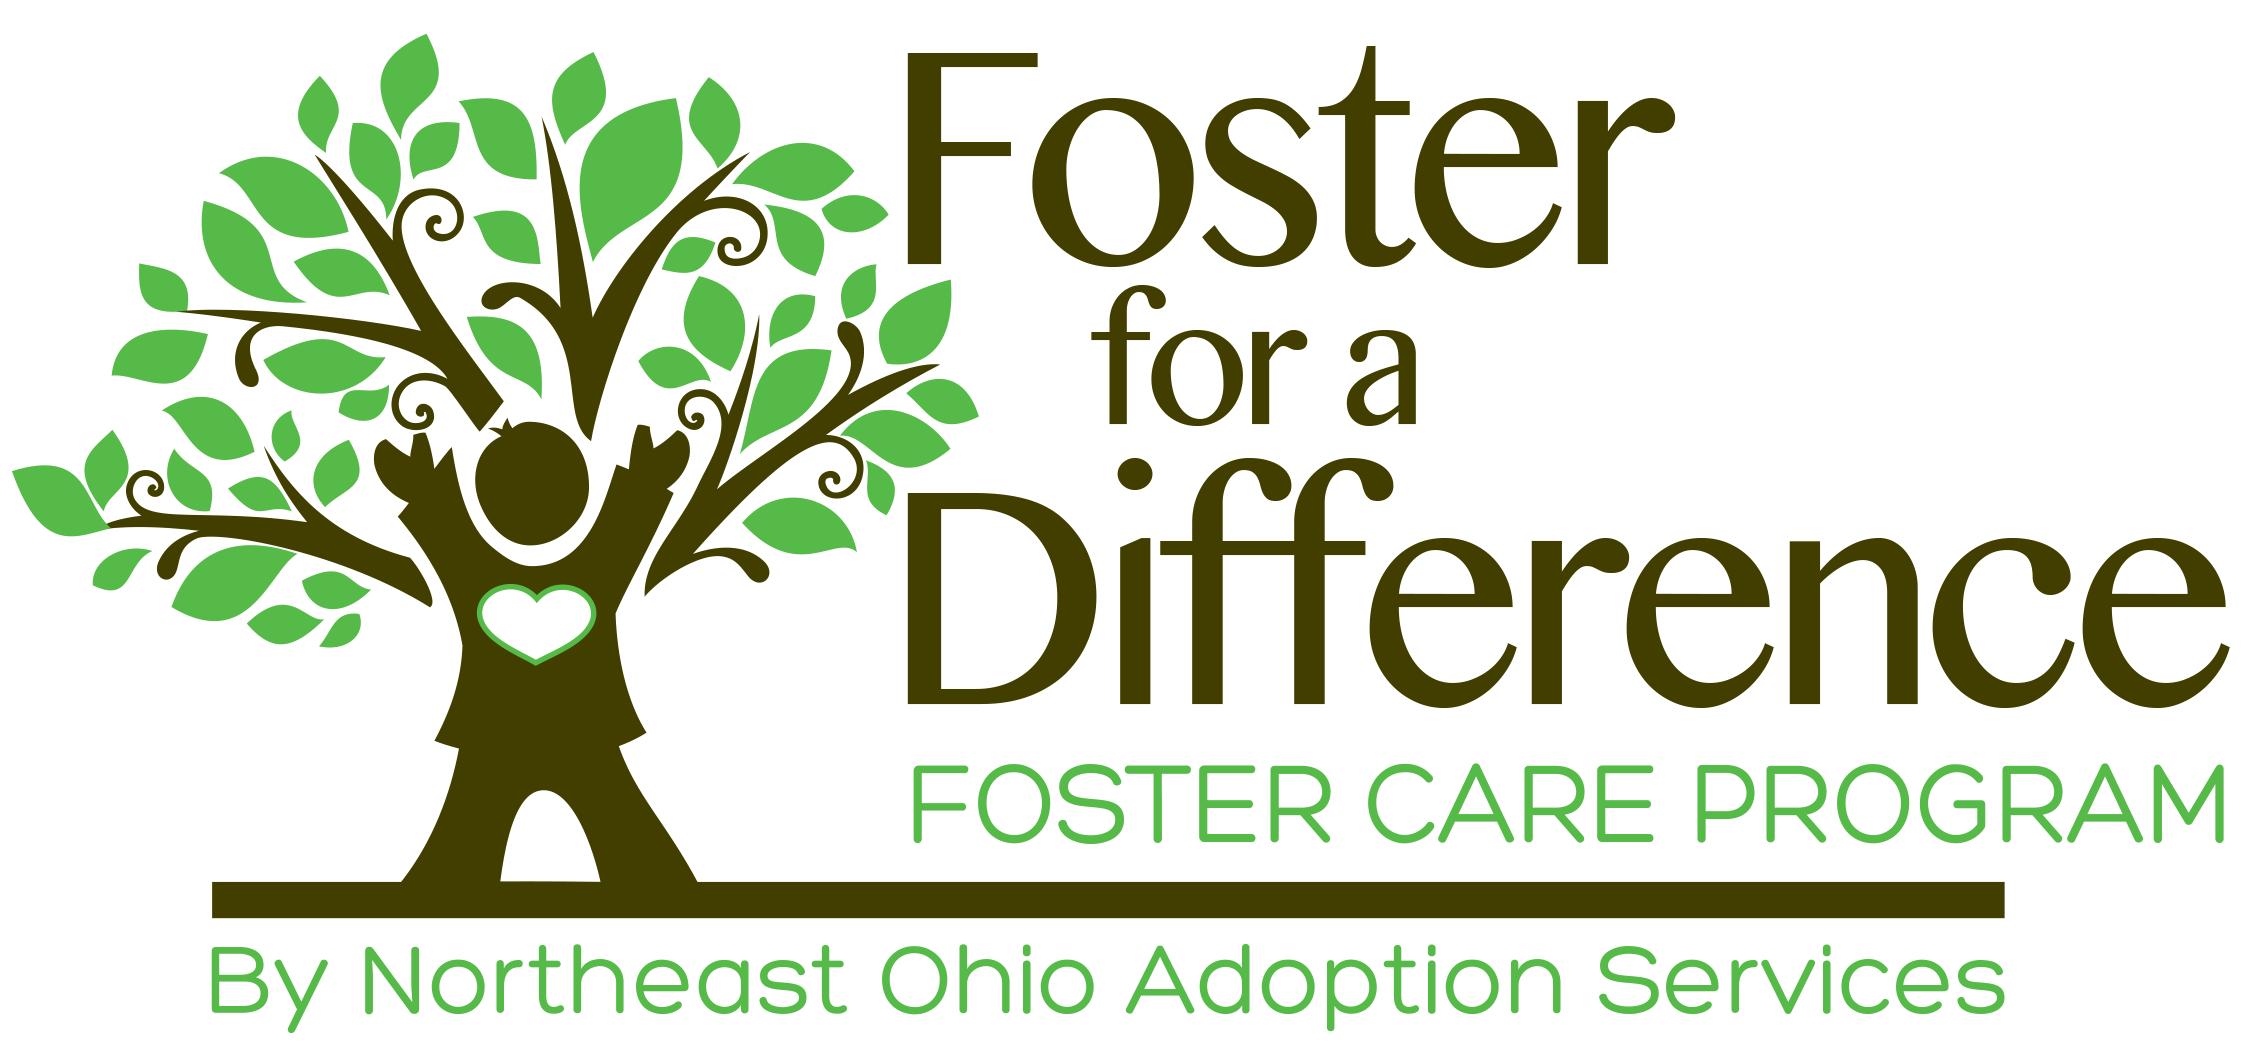 Foster for a Difference